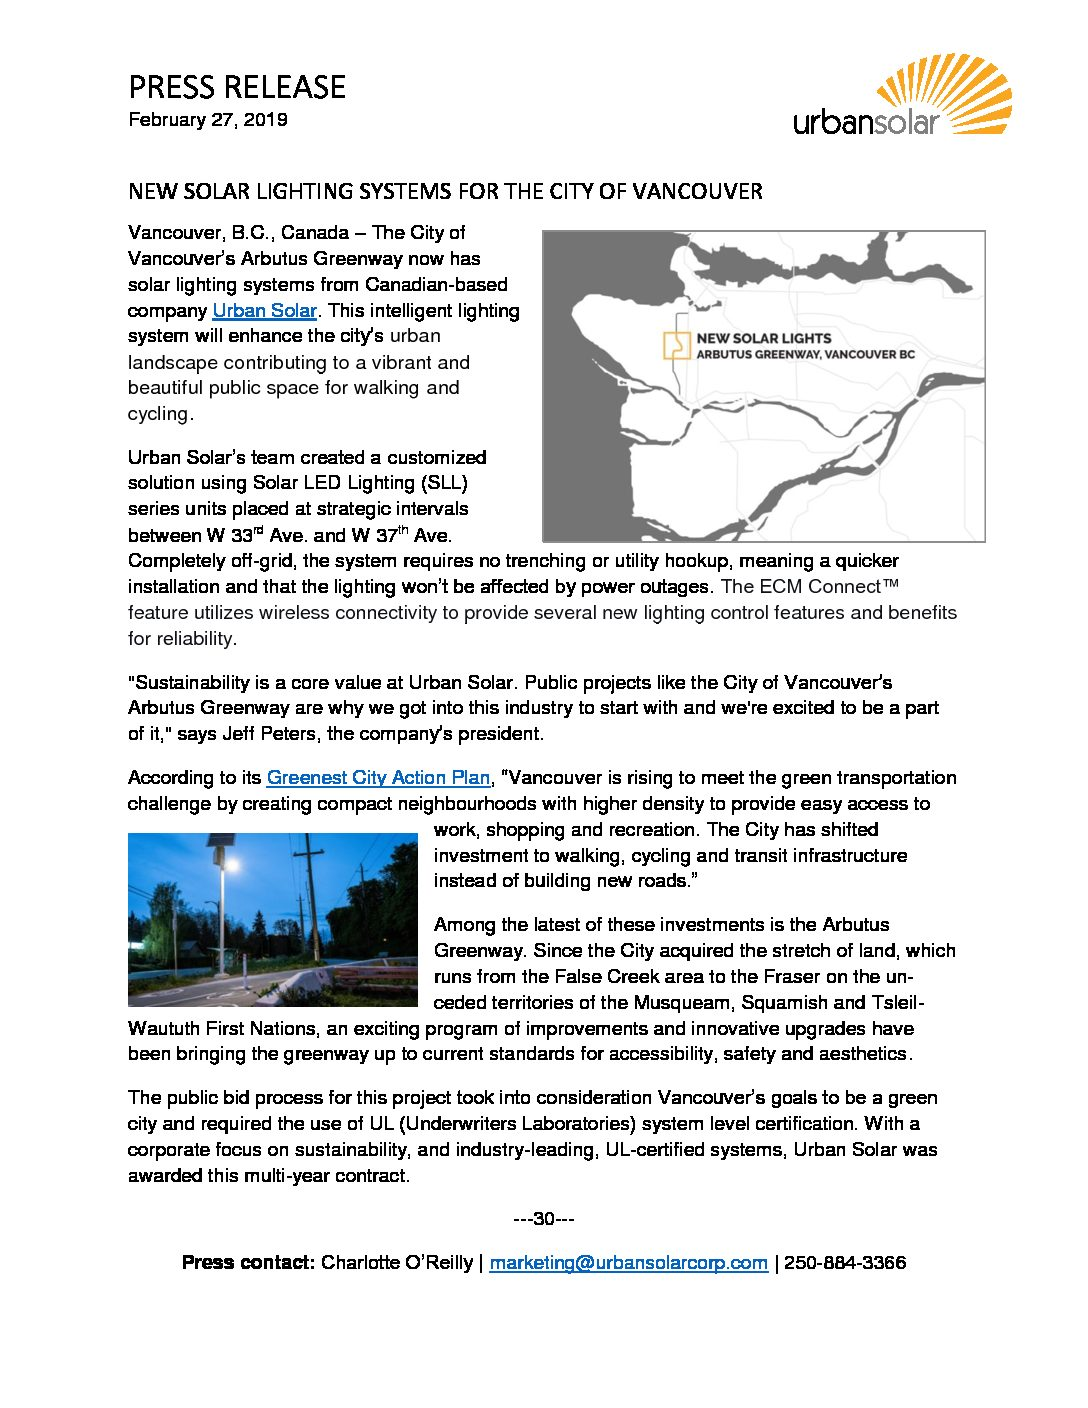 Urban Solar - New Solar Lighting Systems for the City of Vancouver